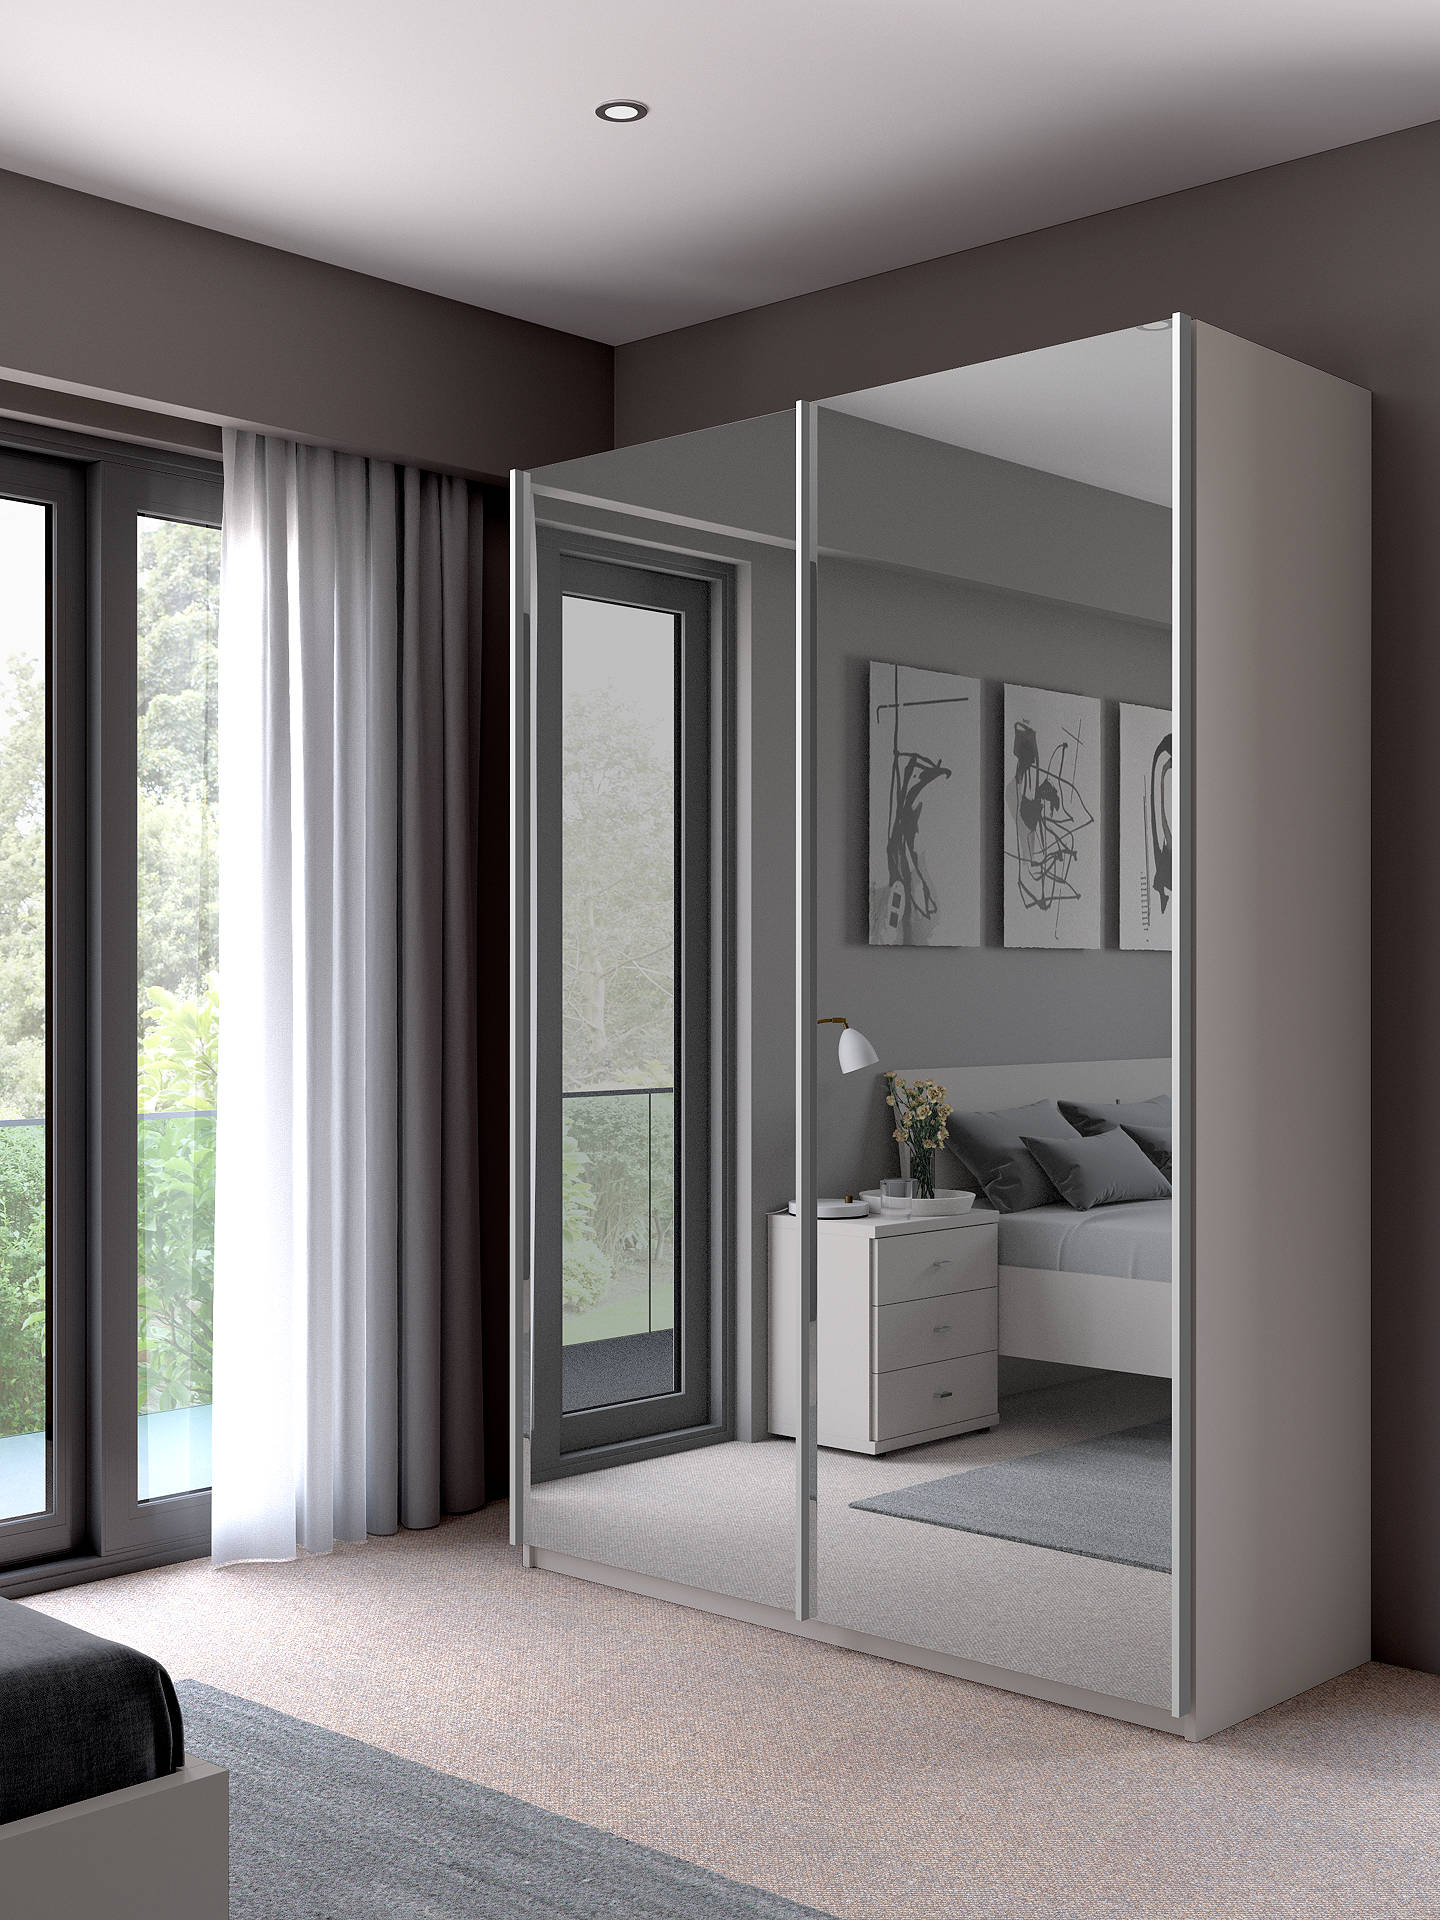 BuyJohn Lewis & Partners Elstra 150cm Wardrobe with Mirrored Sliding Doors, Alpine White Online at johnlewis.com